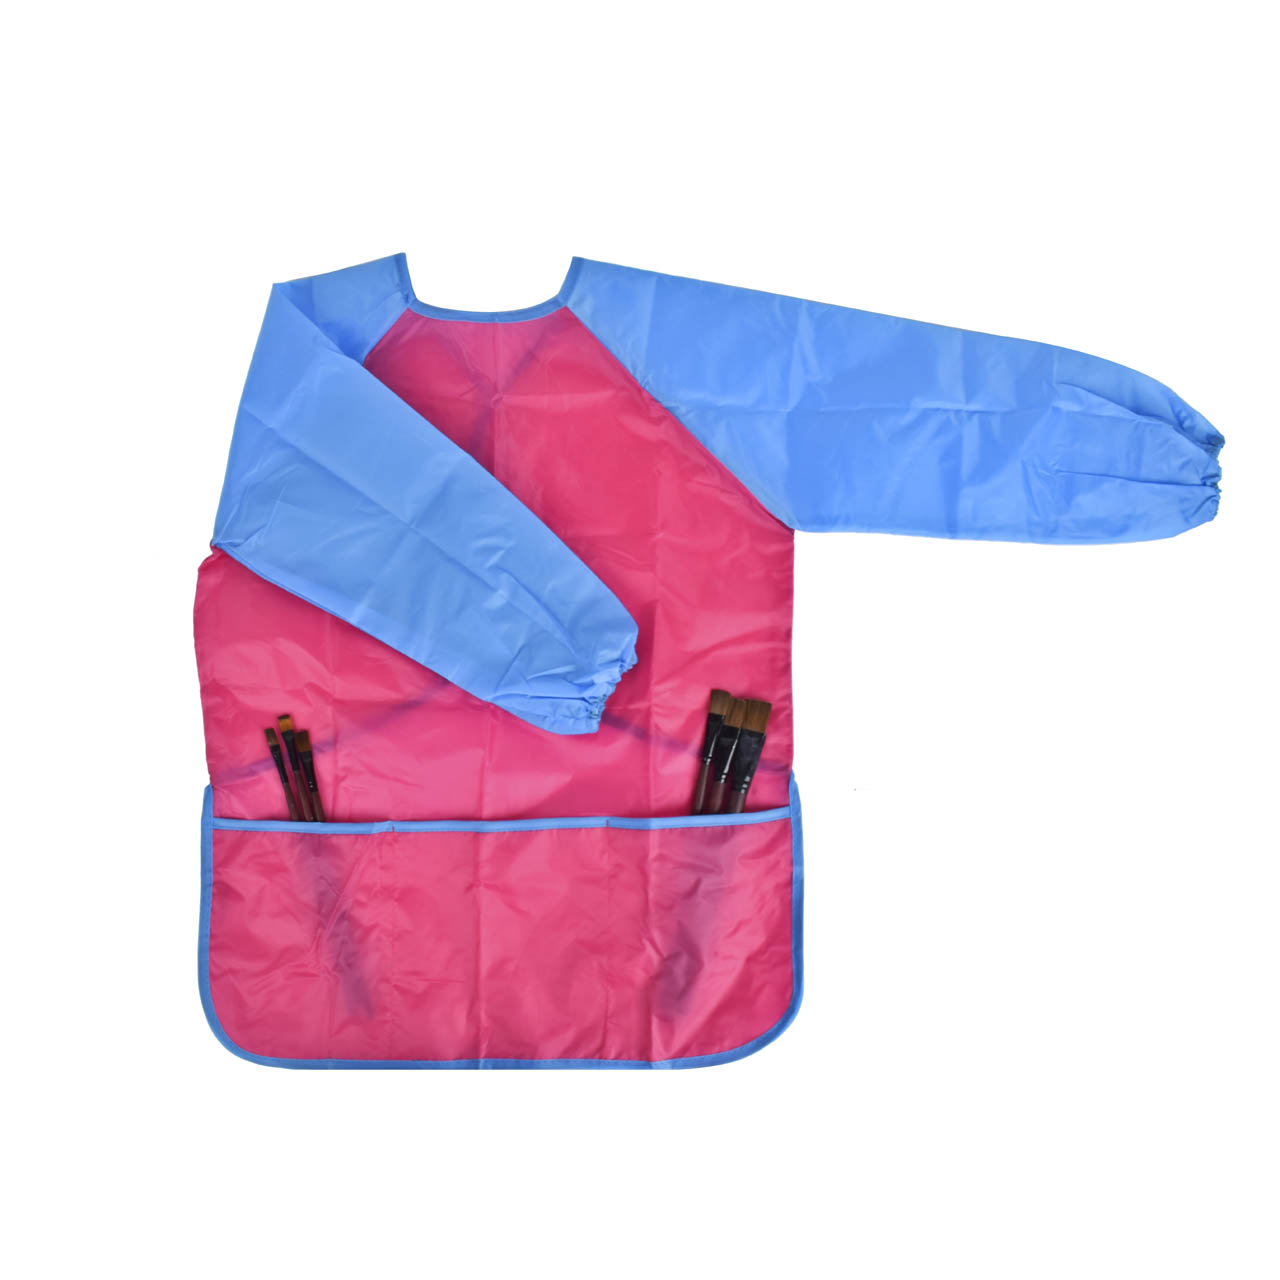 2016 Children Baby Todder Waterproof Long Sleeve Art Smock Apron Eating Smock for Painting Art Class Art Craft Painting Apron